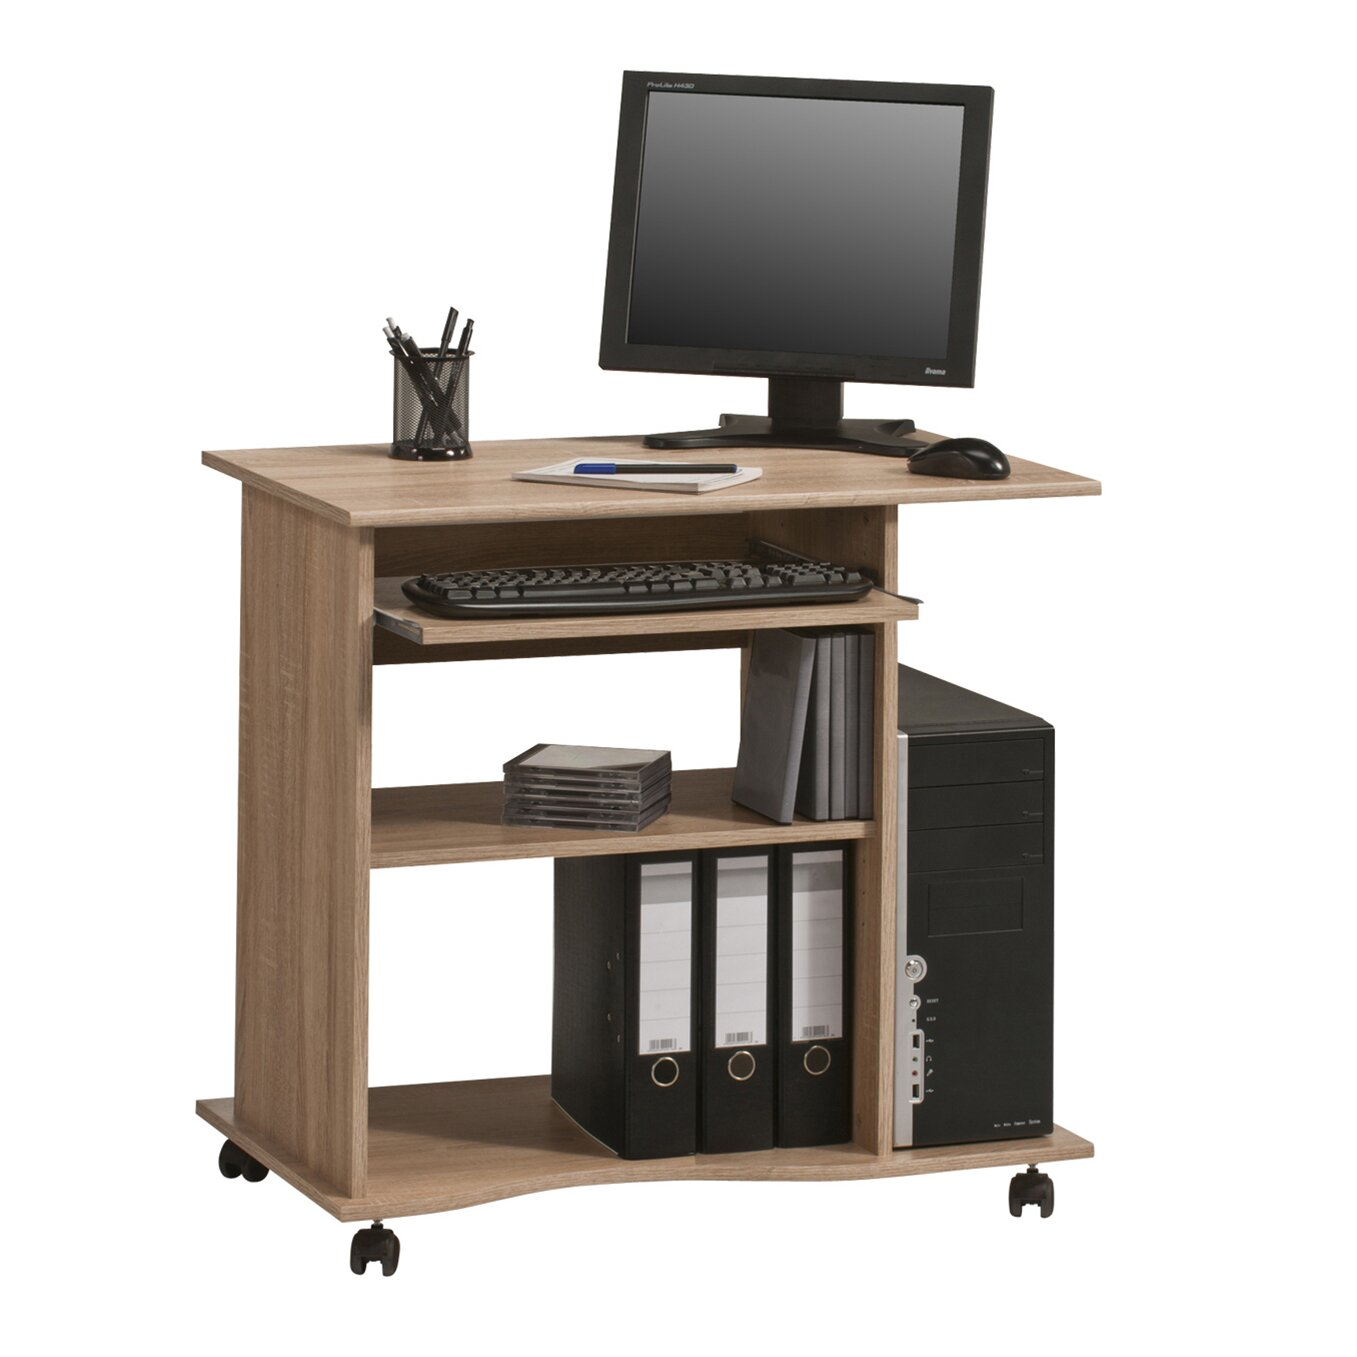 maja m bel computertisch office mit rollen bewertungen. Black Bedroom Furniture Sets. Home Design Ideas